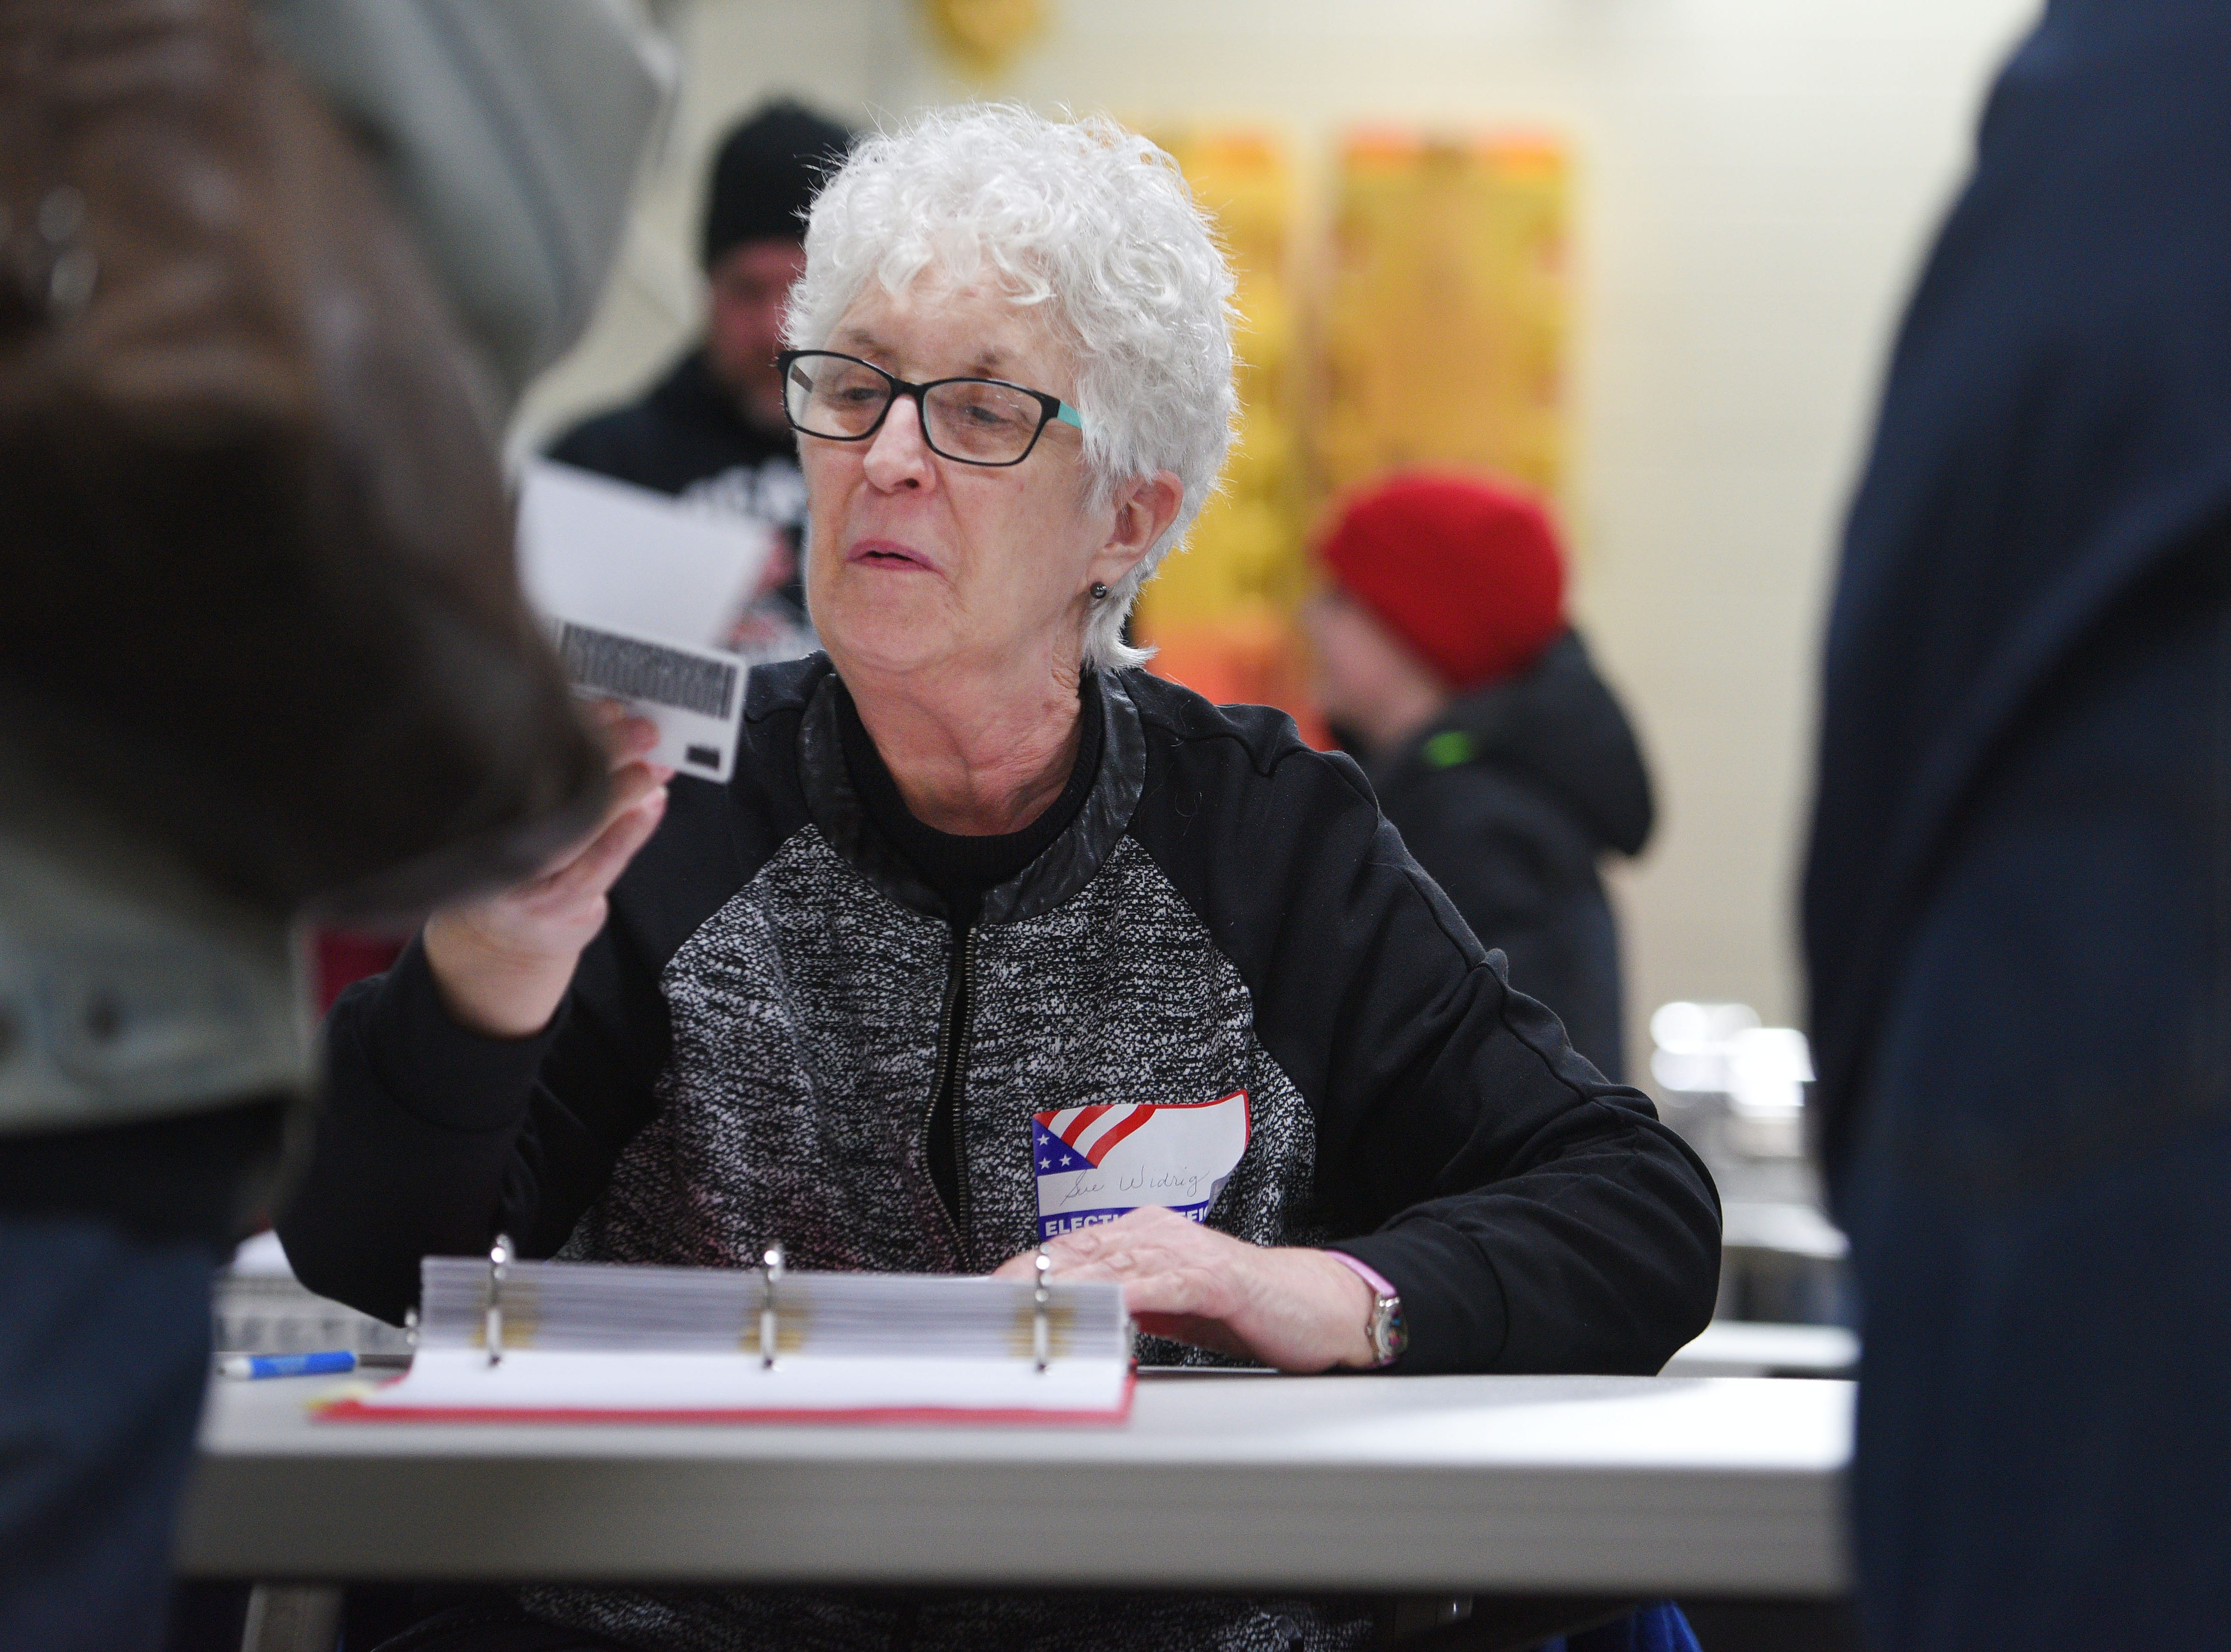 Sue Widrig, poll worker, looks up a voter for the 2018 midterm elections Tuesday, Nov. 6, at Fire Station #7 in Sioux Falls.